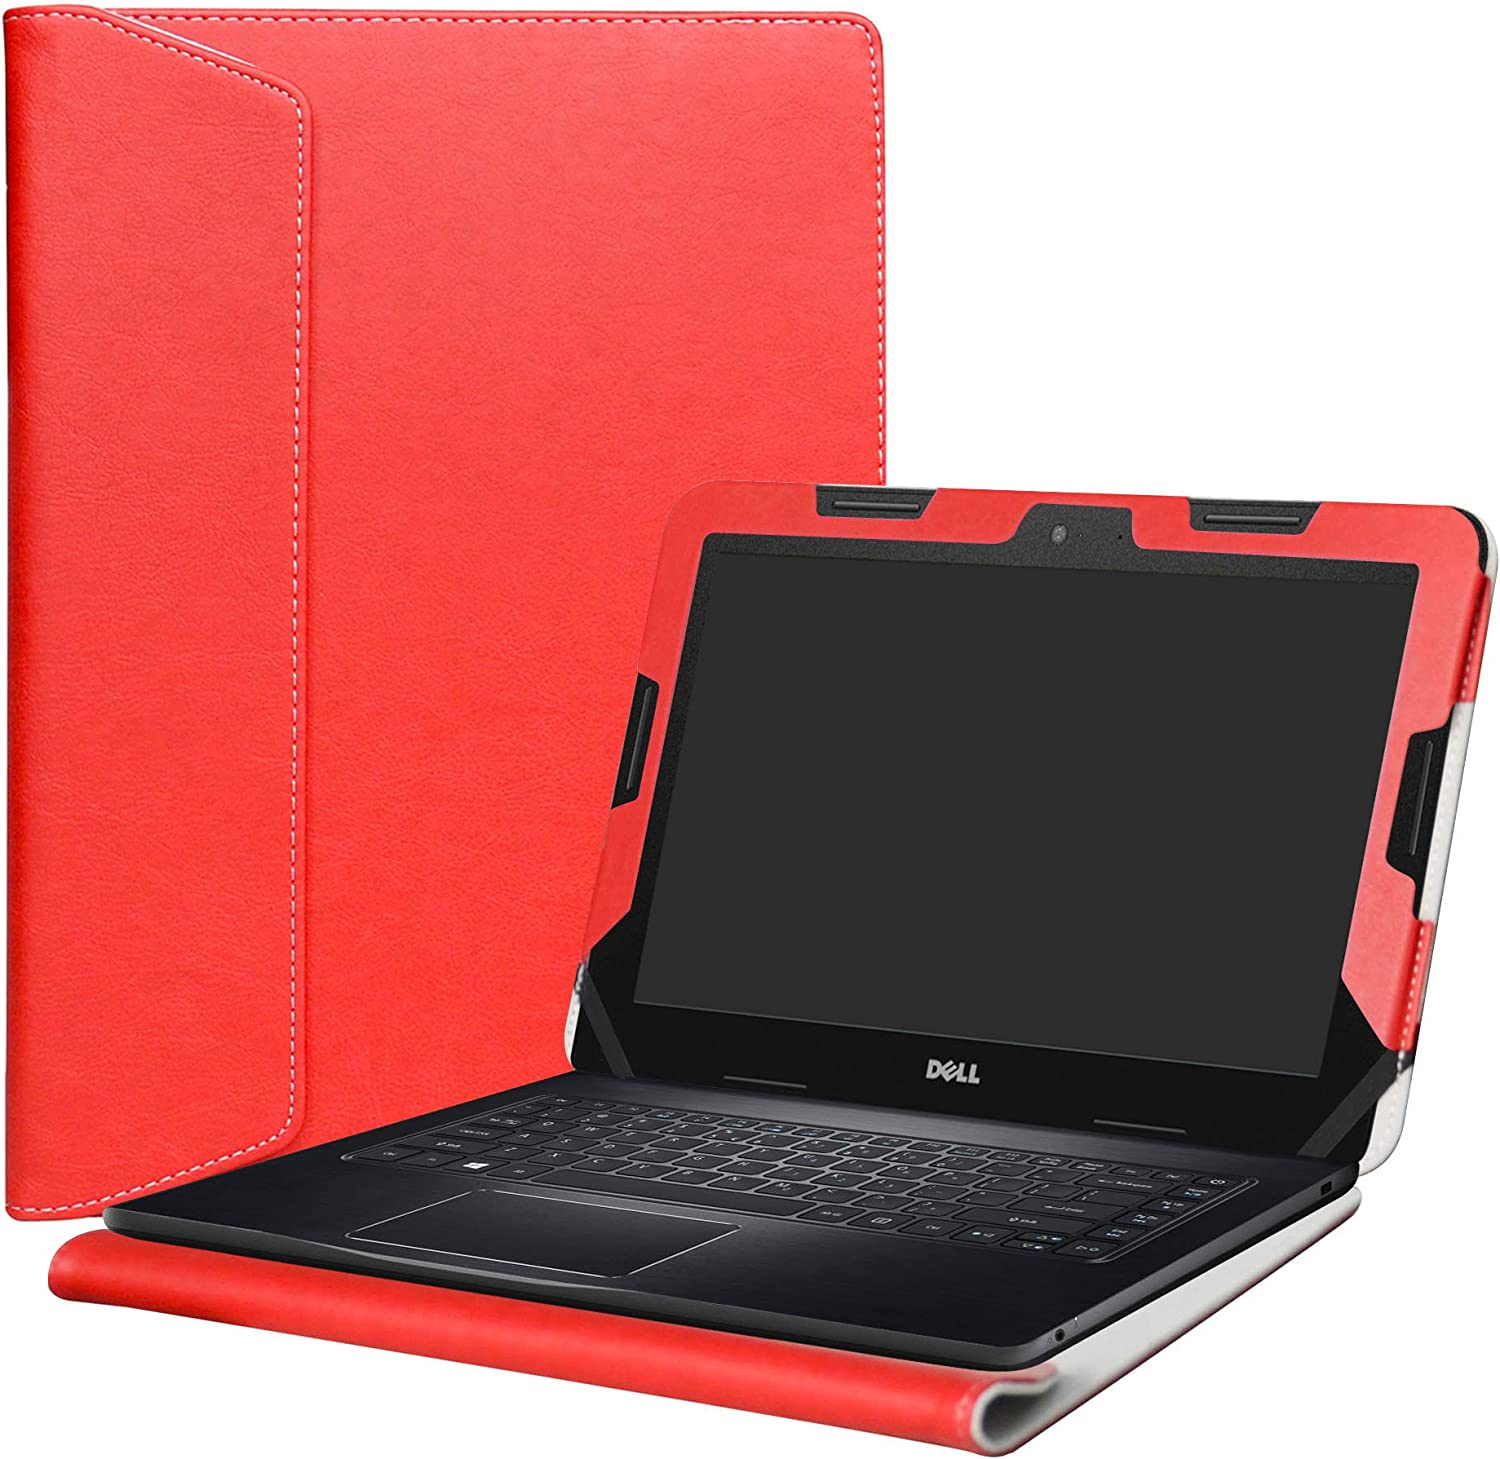 "Alapmk Protective Case Cover for 11.6"" Dell Chromebook 11 3189 3180/Inspiron Chromebook 11 3181/Latitude 11 3180 3190 Education Series Laptop(Note:Not fit Dell Chromebook 11 5190 3120),Red"